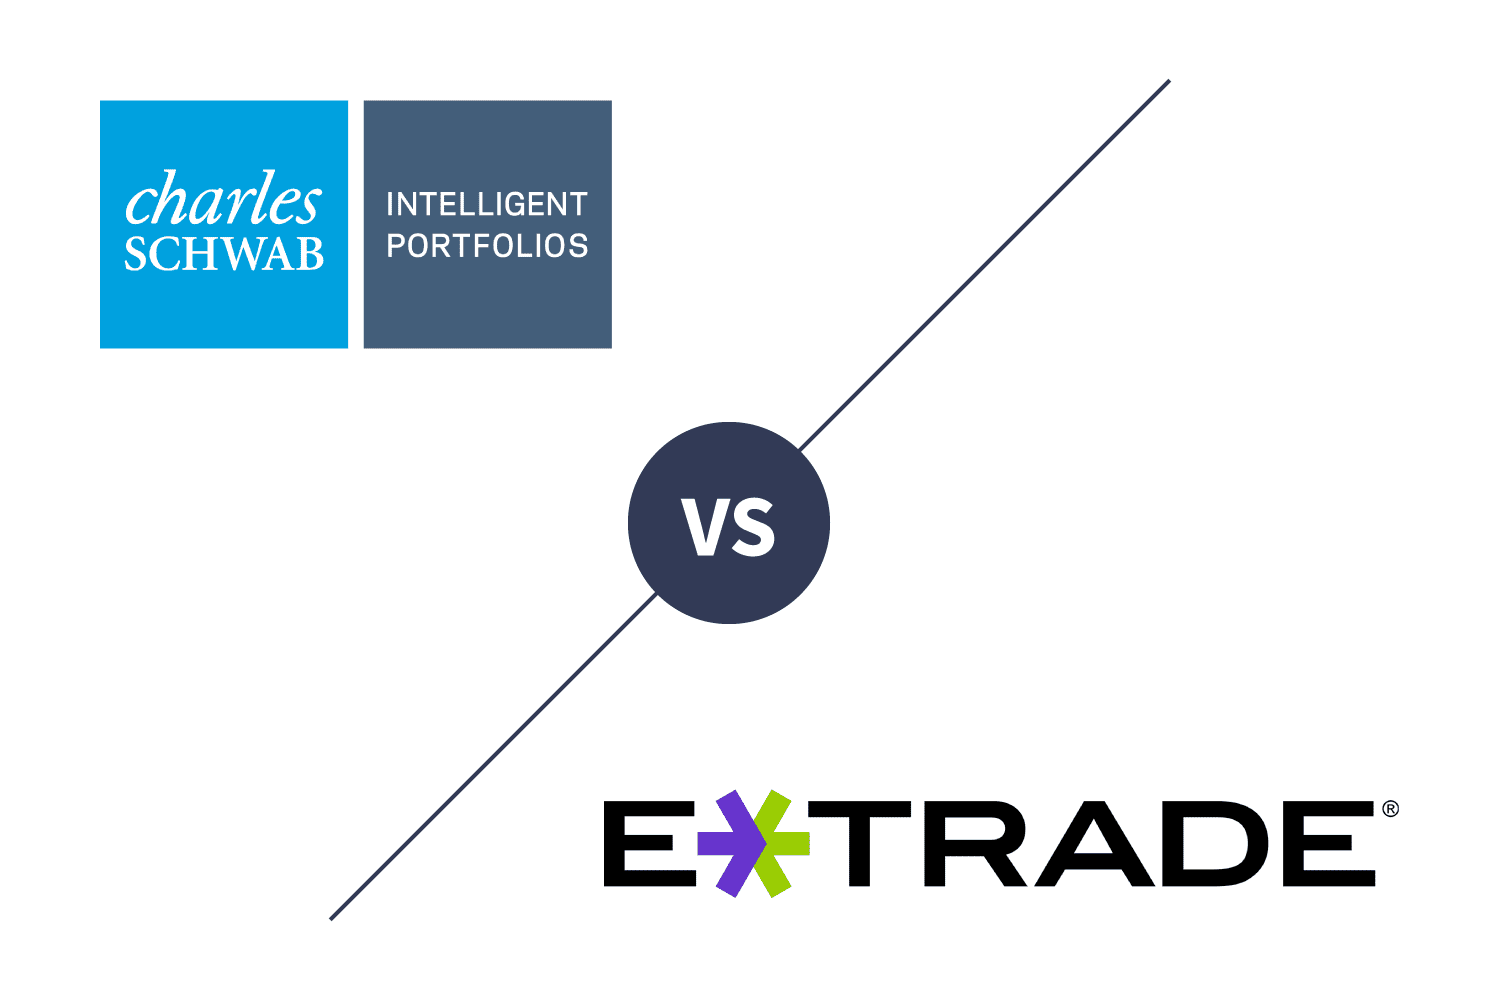 Charles Schwab Intelligent Portfolios vs. E*TRADE Core Portfolios